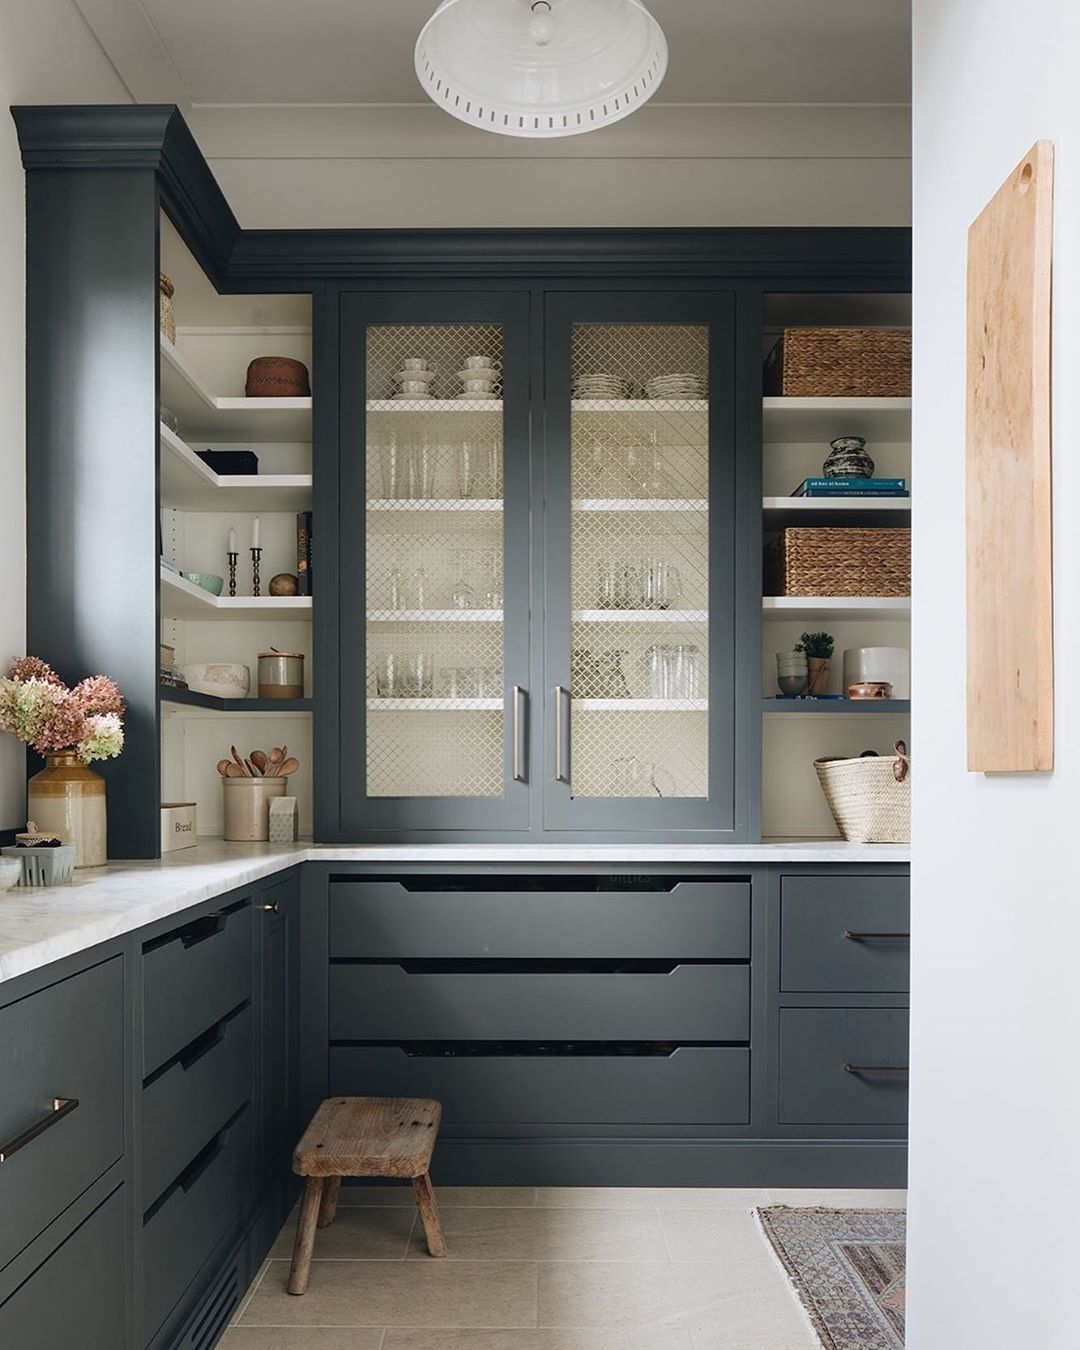 Stoffer Photography Interiors On Instagram Butlers Pantry Perfection Shot For Katemarkerinteriors In 2020 Interior Design Kitchen Pantry Inspiration Pantry Design